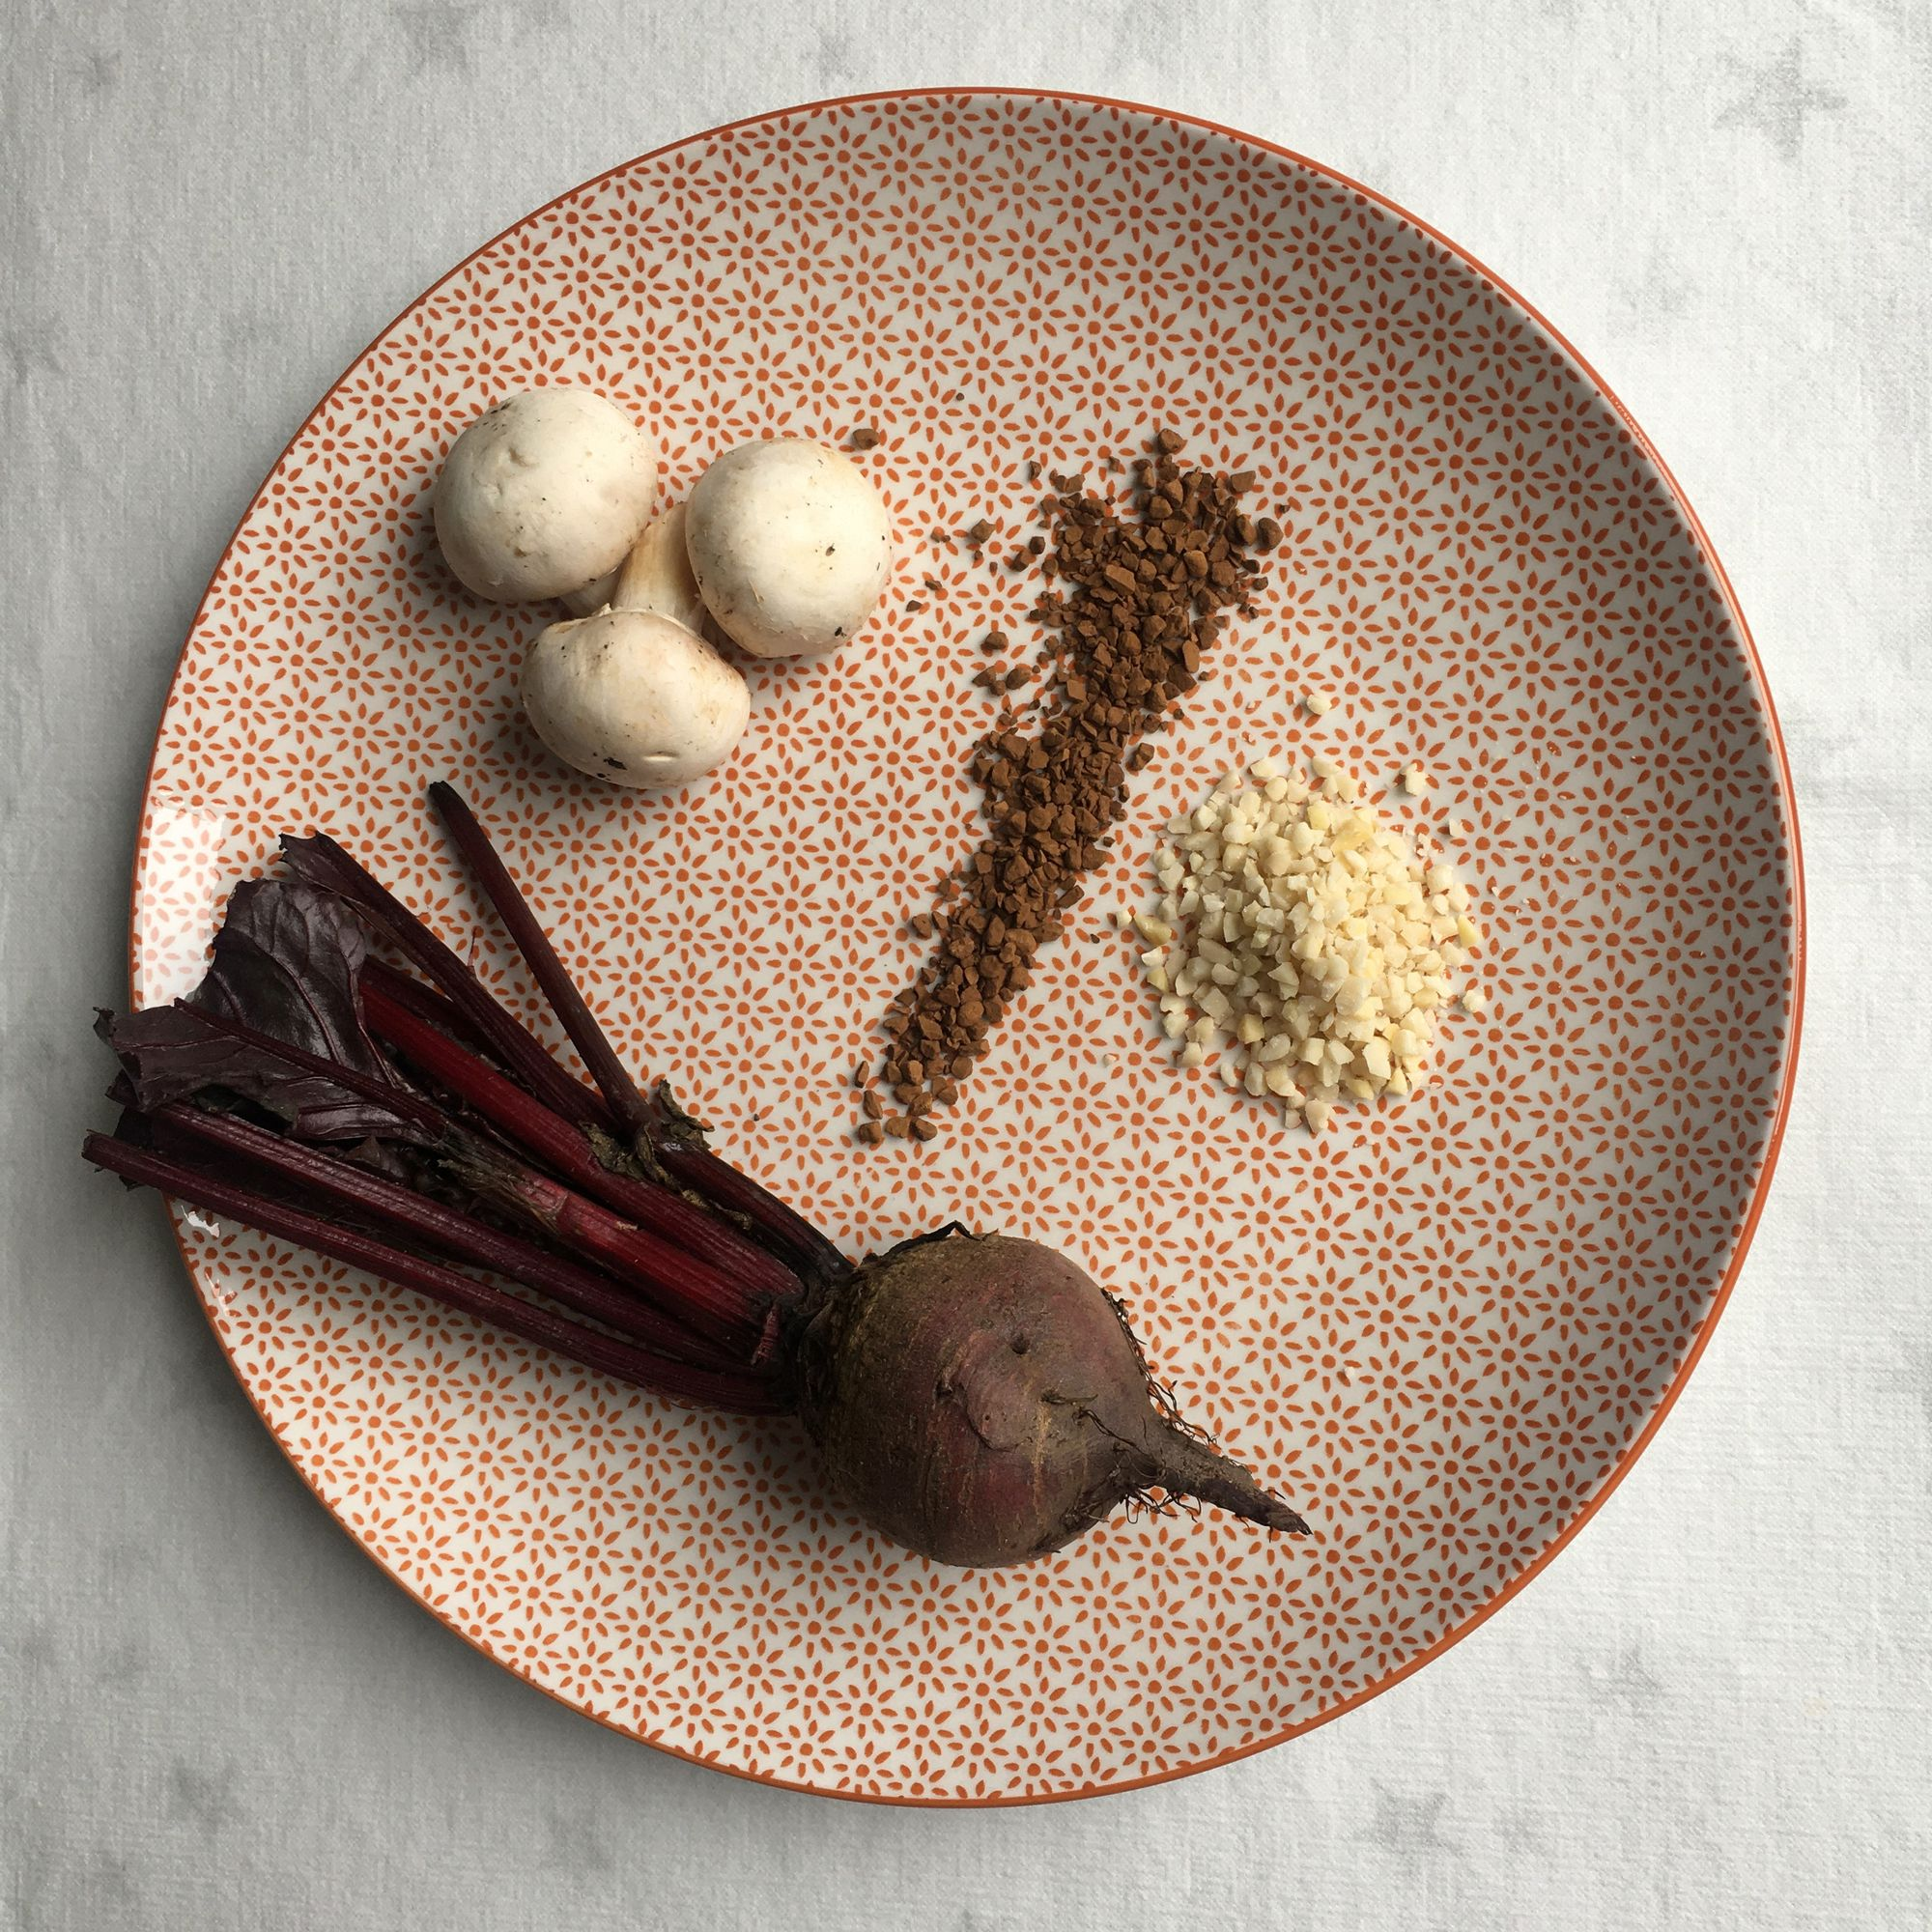 Plate with Tertiary Aroma objects - mushrooms, coffee, almonds, beet